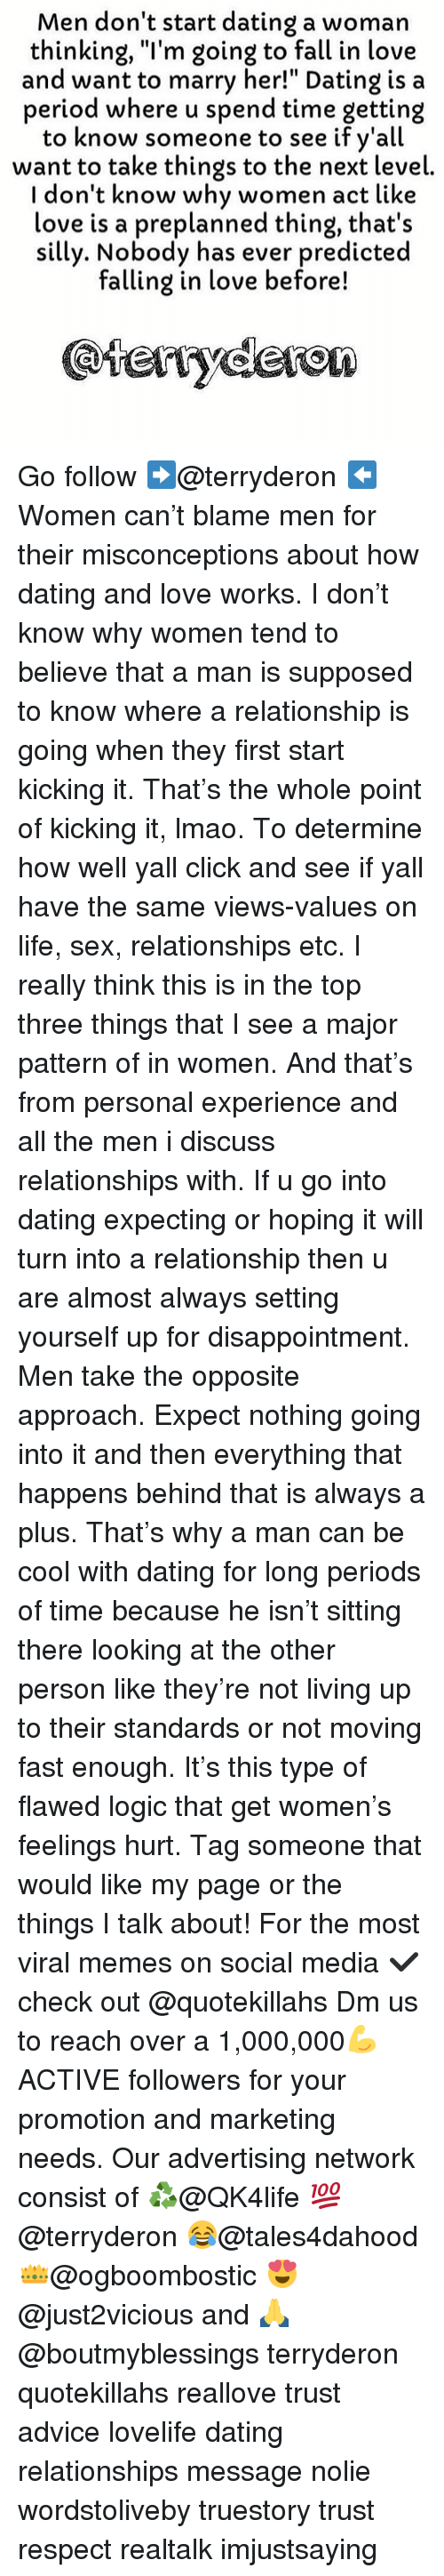 how to take things to the next level dating